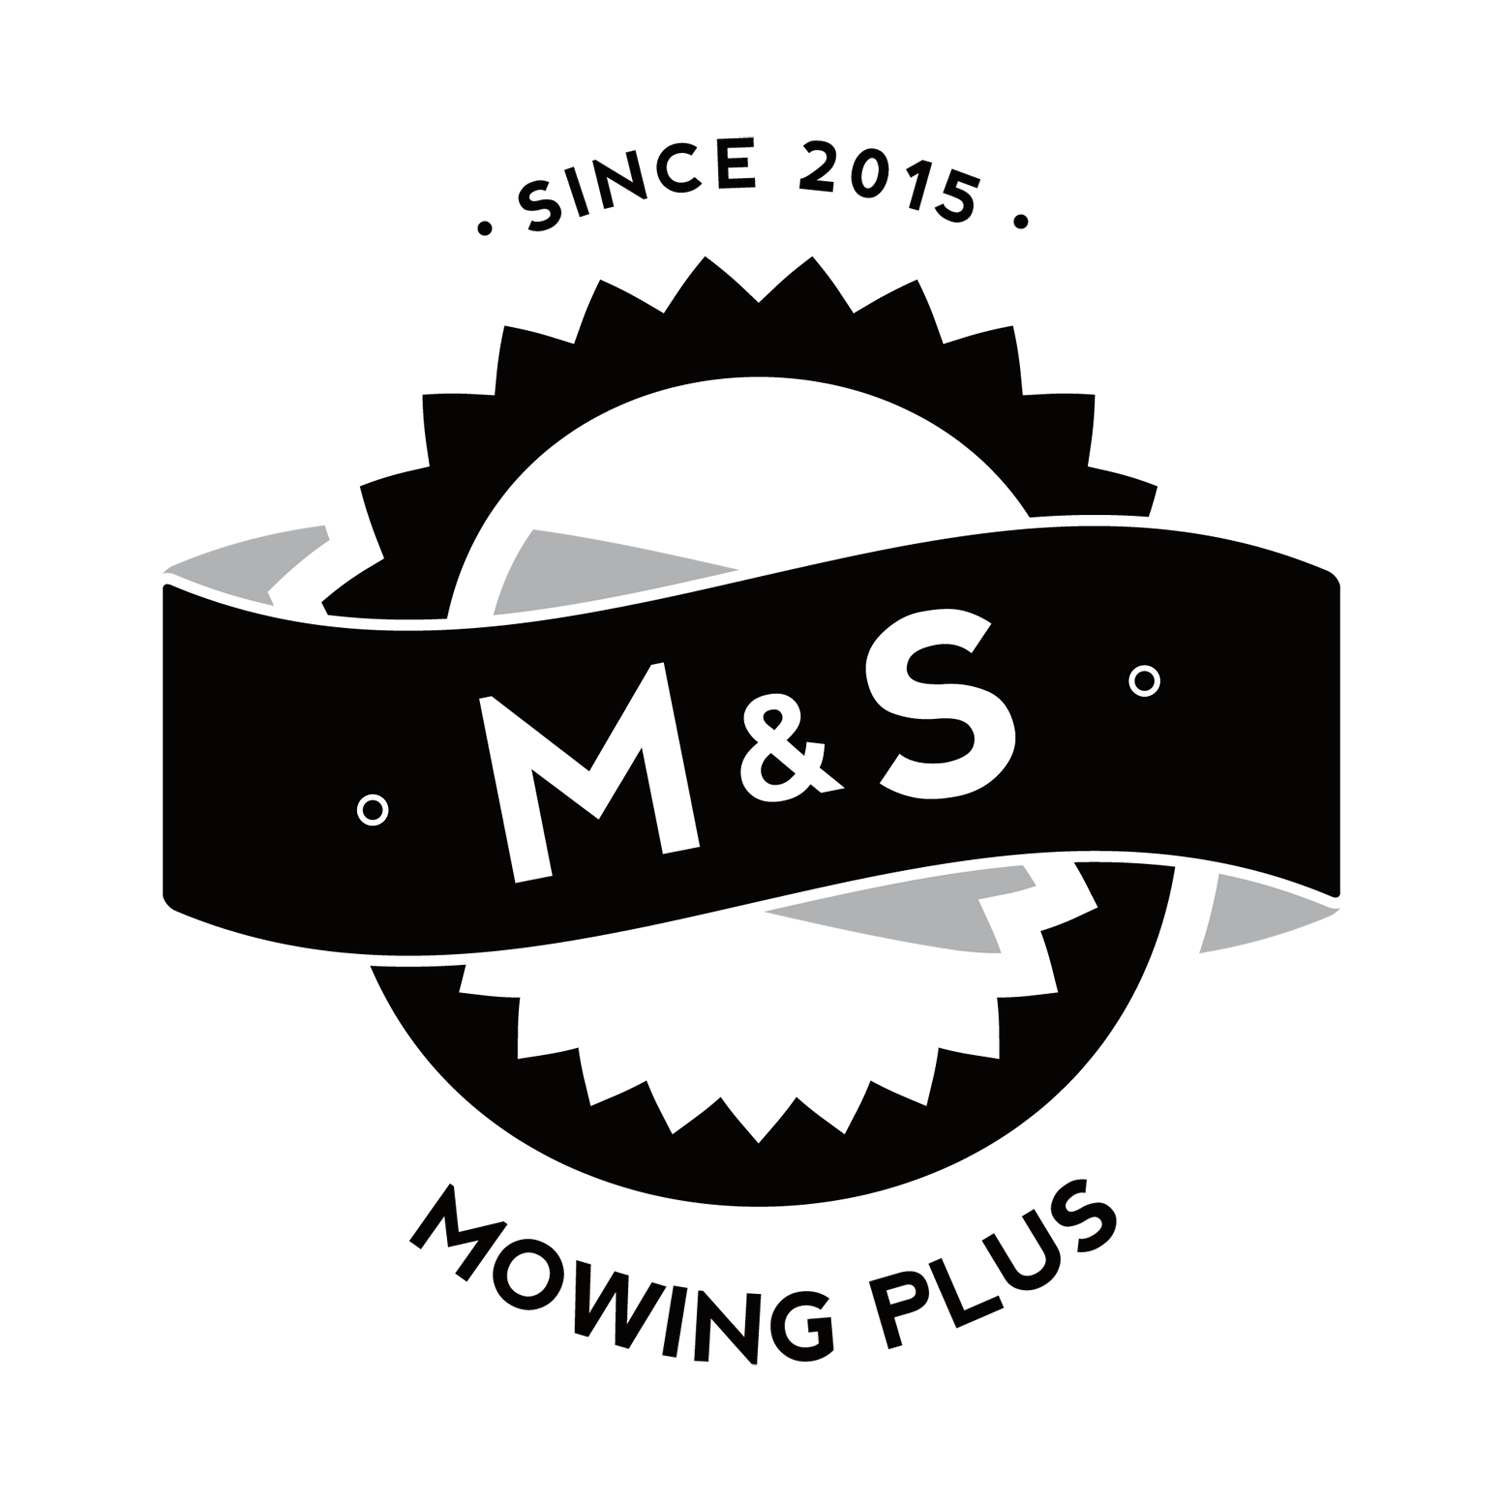 landscaping logo design for mampamps mowing plus by rana